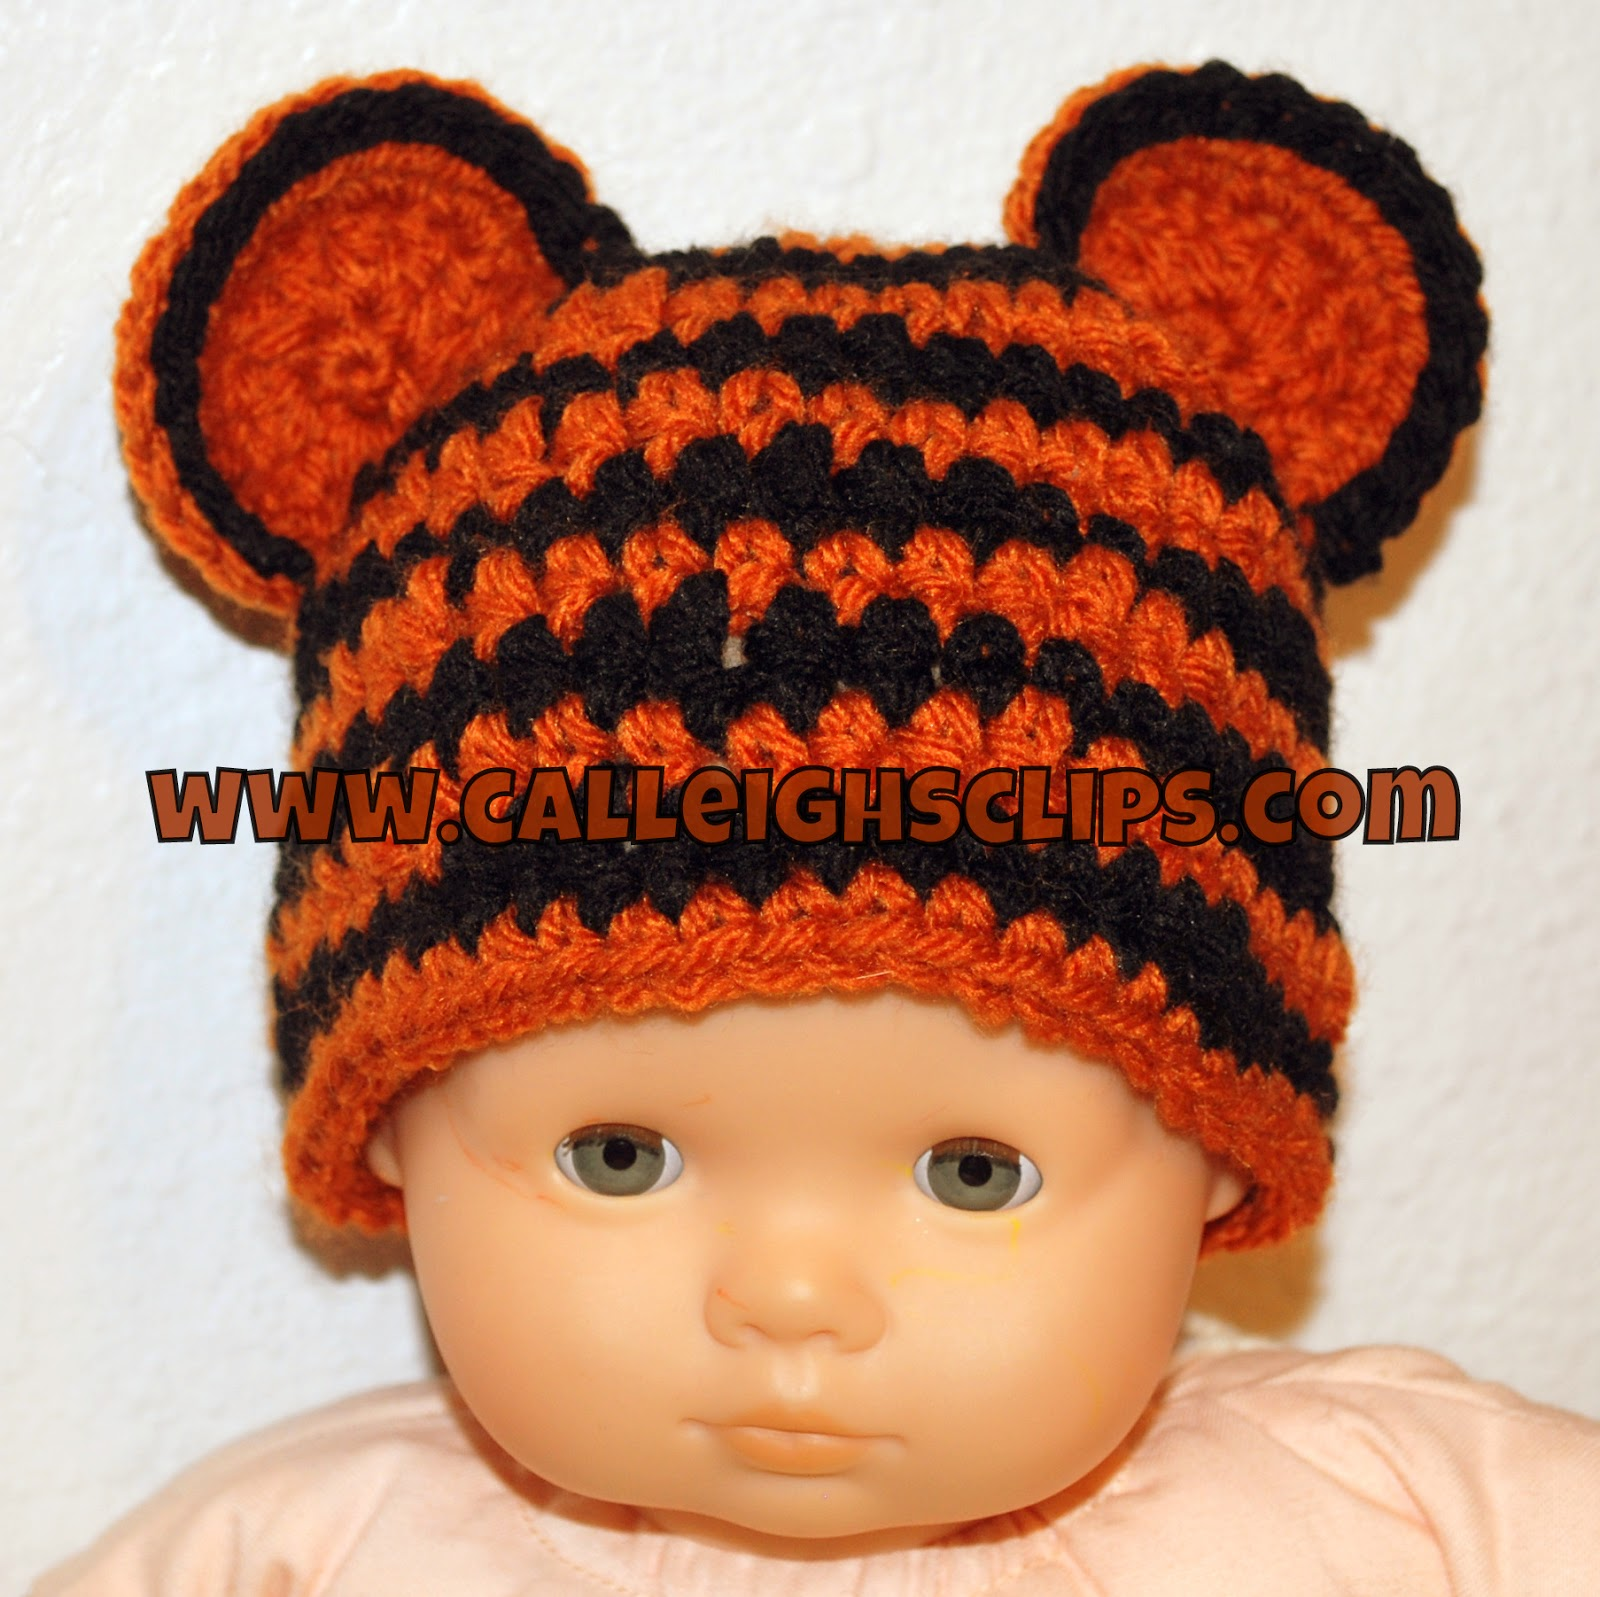 Calleighs Clips & Crochet Creations: Preemie Tiger Hat ...